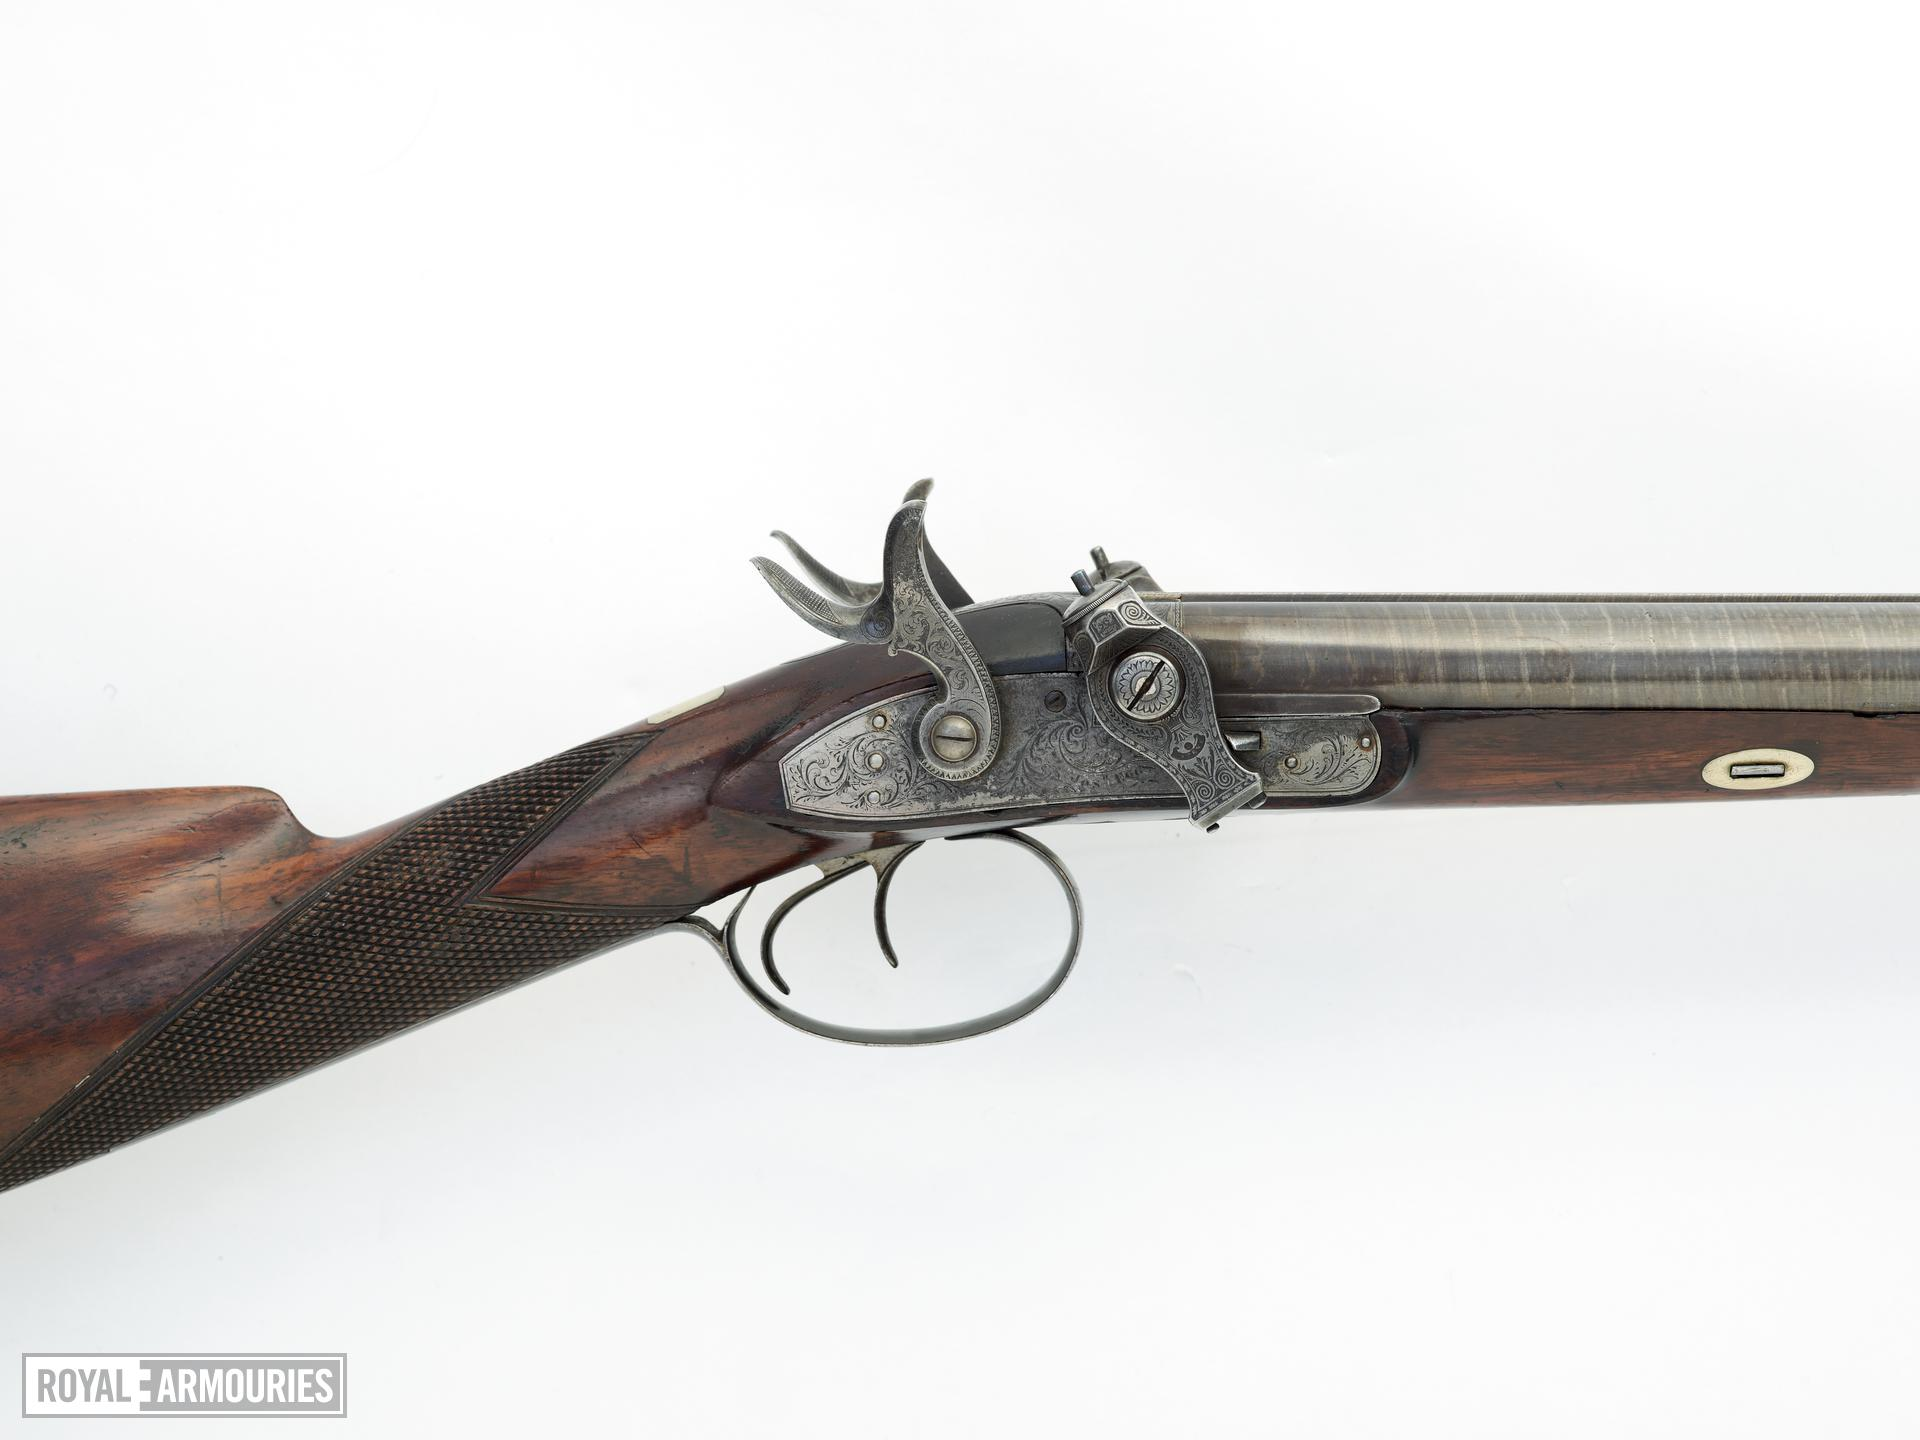 Percussion double-barrelled shotgun - By Joseph Egg Cased Converted from flintlock to the fulminate lock 'scent bottle' type by Forsyth & Co in 1821  The inscription on the rib is of a later date.